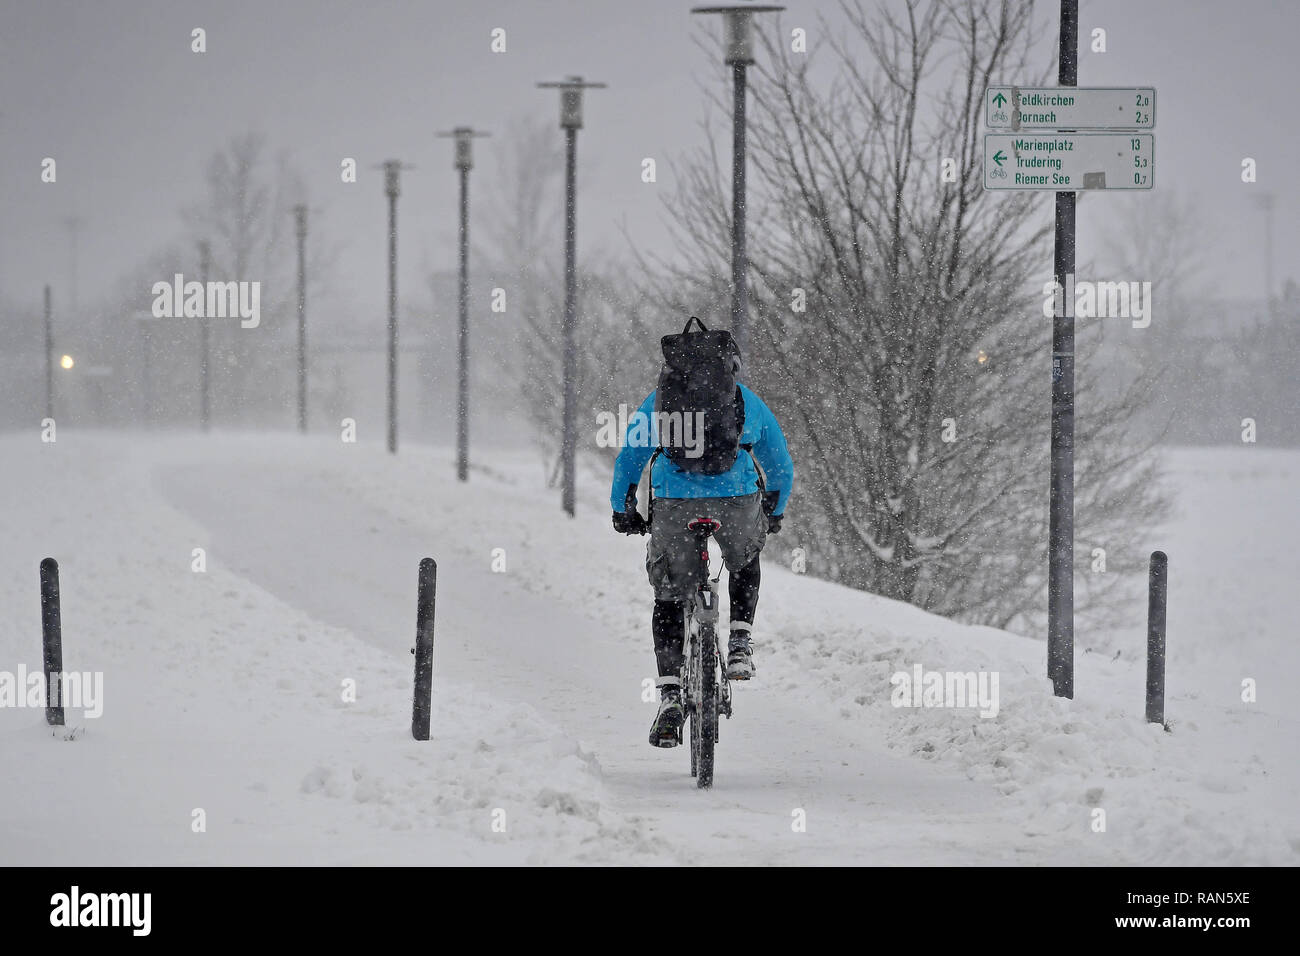 Munich Riem, Deutschland. 05th Jan, 2019. Wetterfeature-Fahrradkurier, Fahrradfahrer with backpack defies the snowdrifts and windbows on a snow-covered path in the Riemer Park.Radfahren in the snow Continuing snowfall on 05.01.2019, ensure snow chaos, traffic chaos, winter in Bavaria. | usage worldwide Credit: dpa/Alamy Live News Credit: dpa picture alliance/Alamy Live News Stock Photo